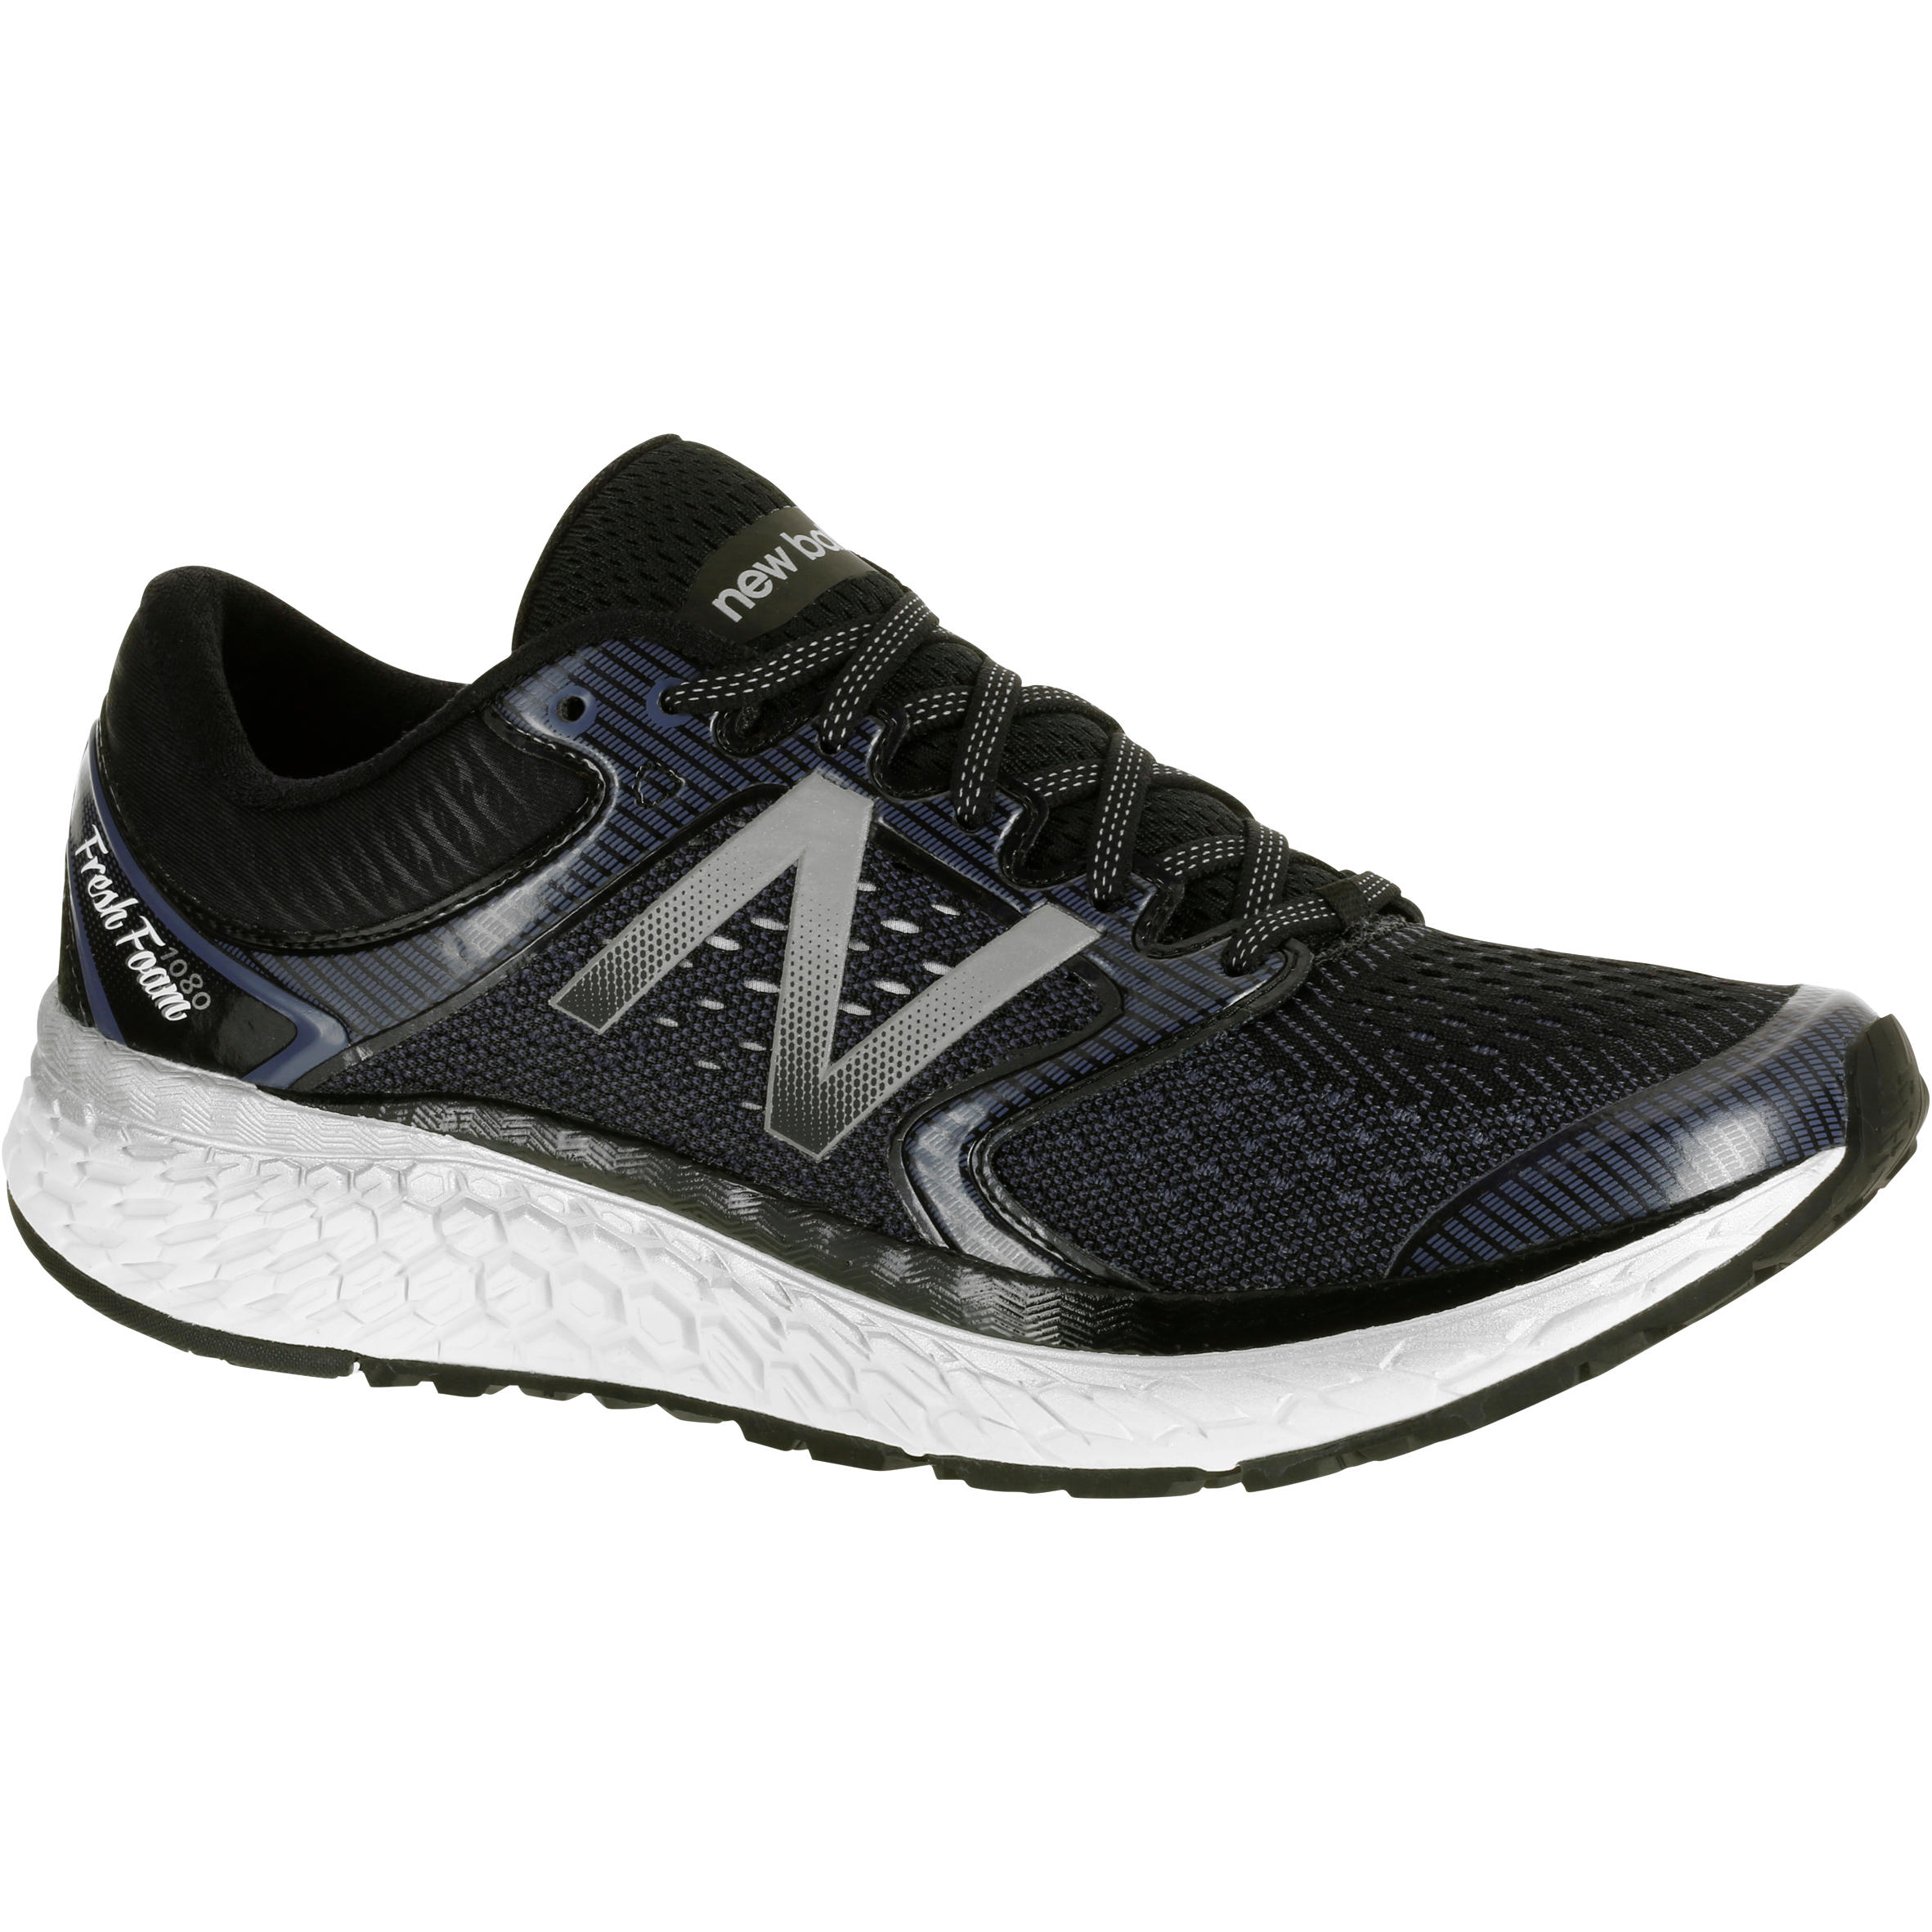 New Running Chaussures 1080 V7 Noir Homme Balance yNw8m0PvnO